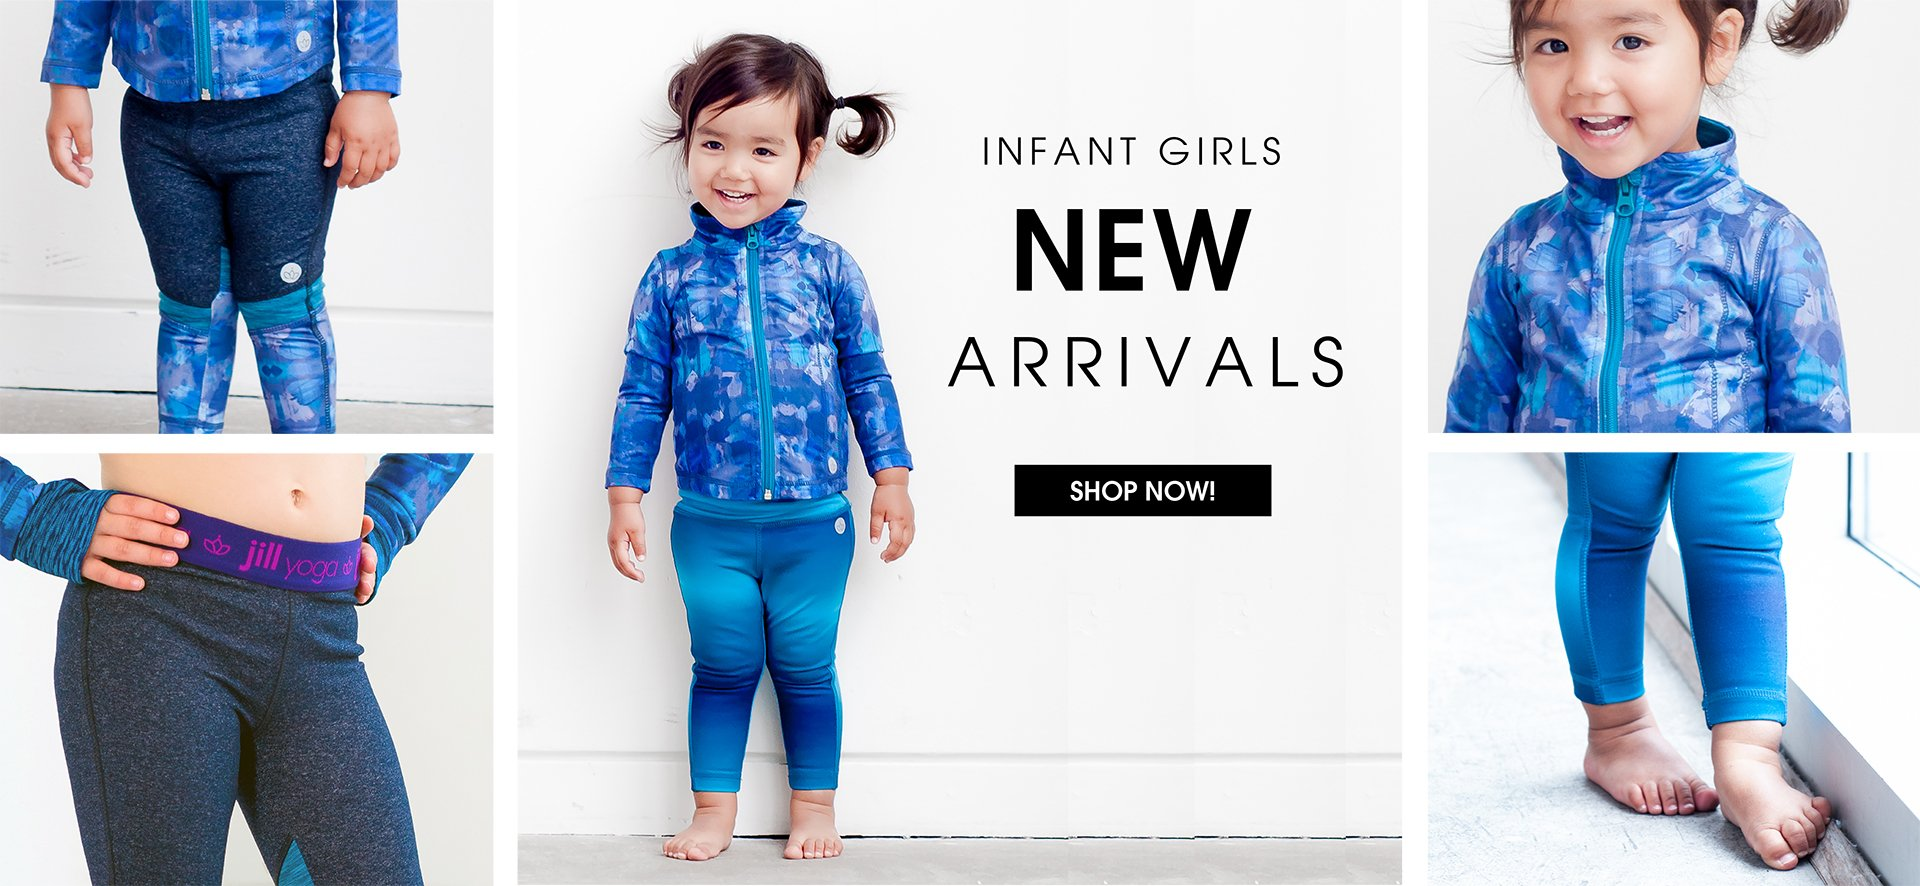 Shop Infant Girls New Arrivals